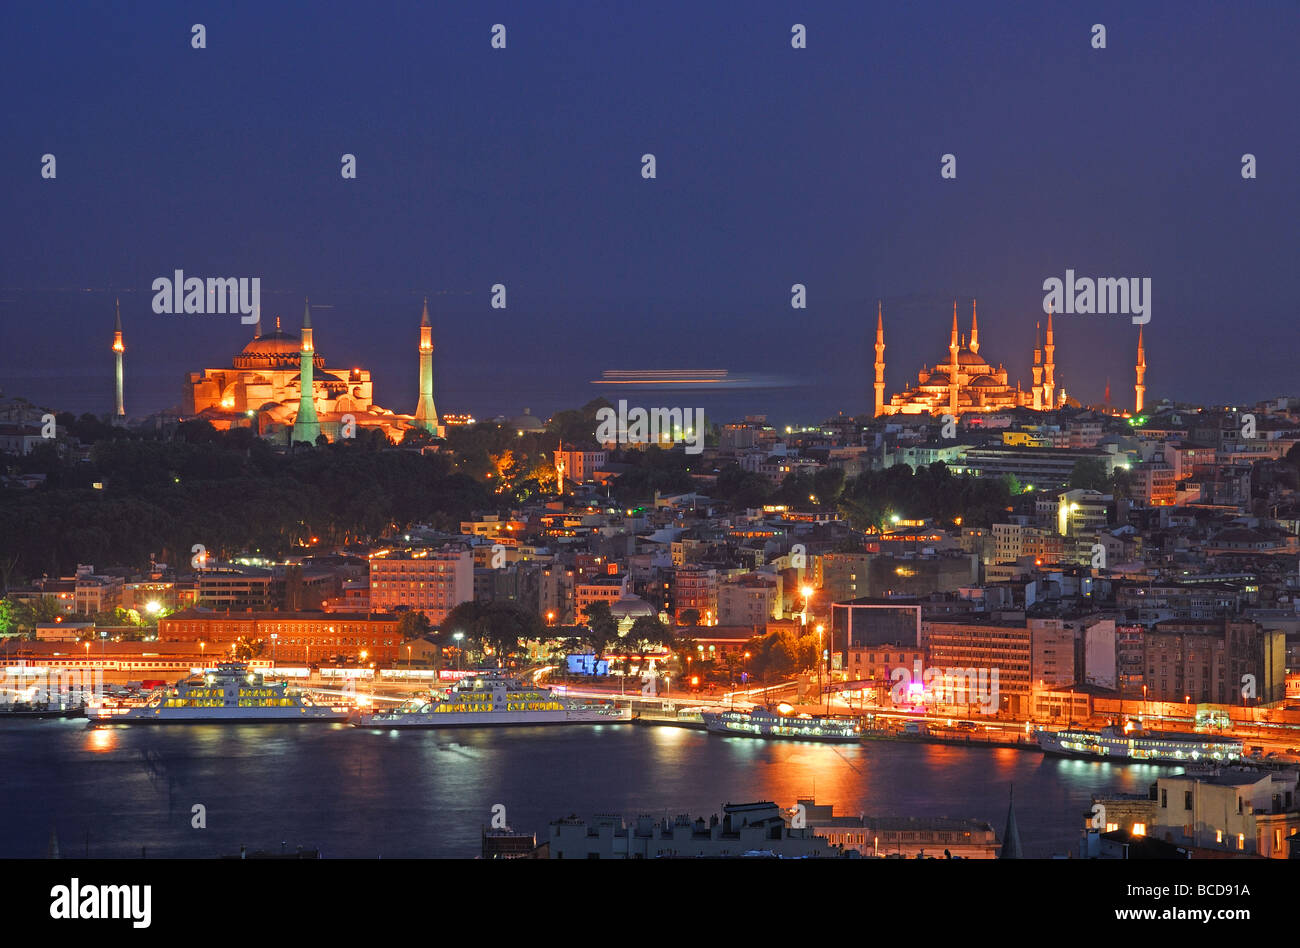 ISTANBUL, TURKEY. A night view of Eminonu waterfront, Sultanahmet and the Golden Horn. 2009. - Stock Image